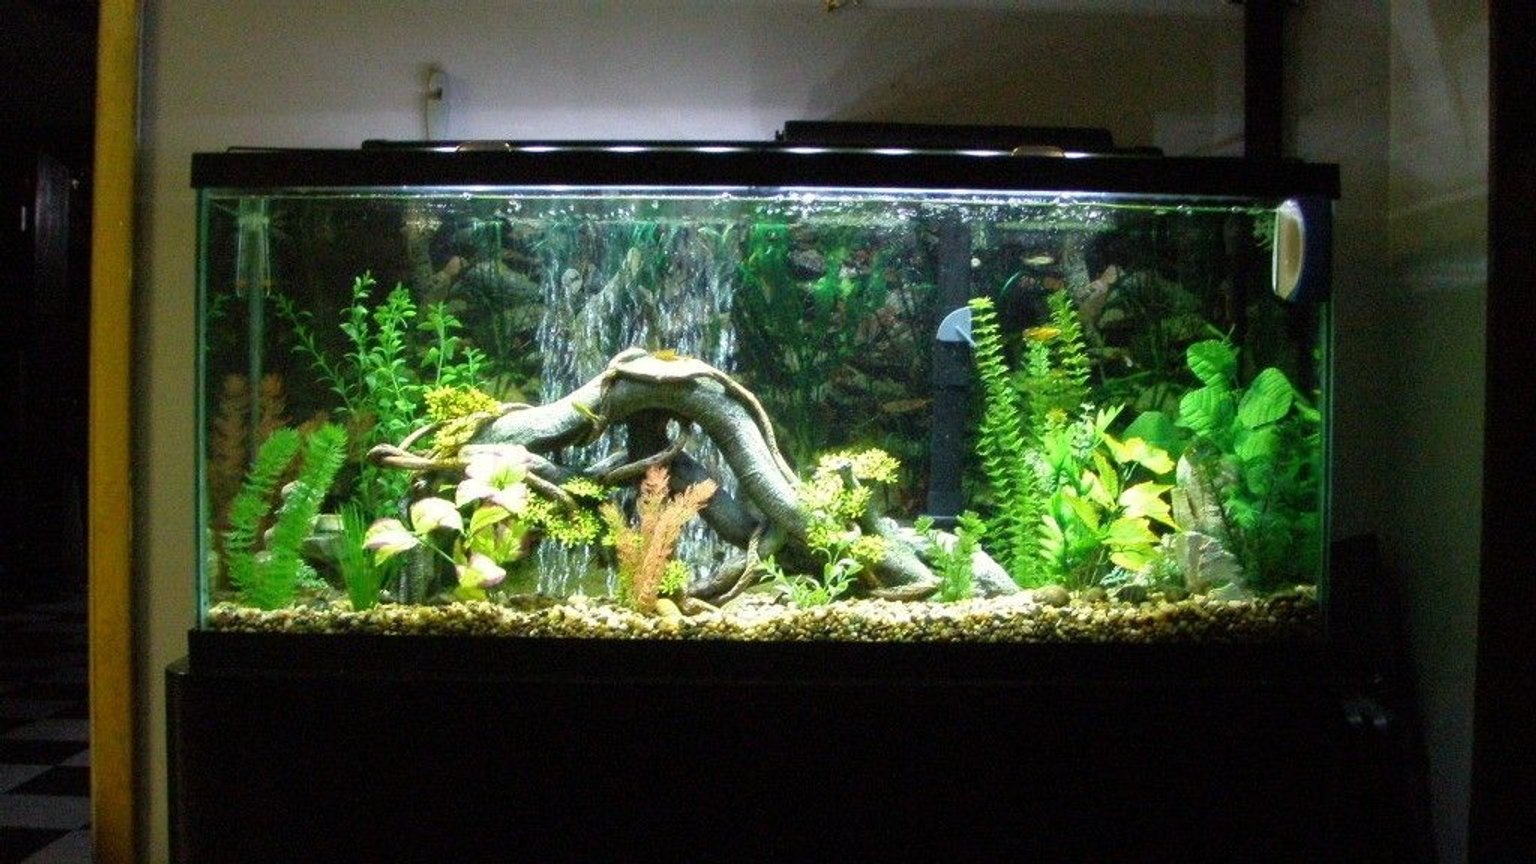 "55 gallons freshwater fish tank (mostly fish and non-living decorations) - my first fish tank ever. its a 55 gallon freshwater. filter is a marineland Emperor 400,water heater is marineland Stealth Pro Heater 250-watt set at 82 degrees keeps the tank at 80 degrees. lighting is marineland led lighting system. air pump is Aquarium Pharmaceuticals RENA 300 with 12"" air stone."